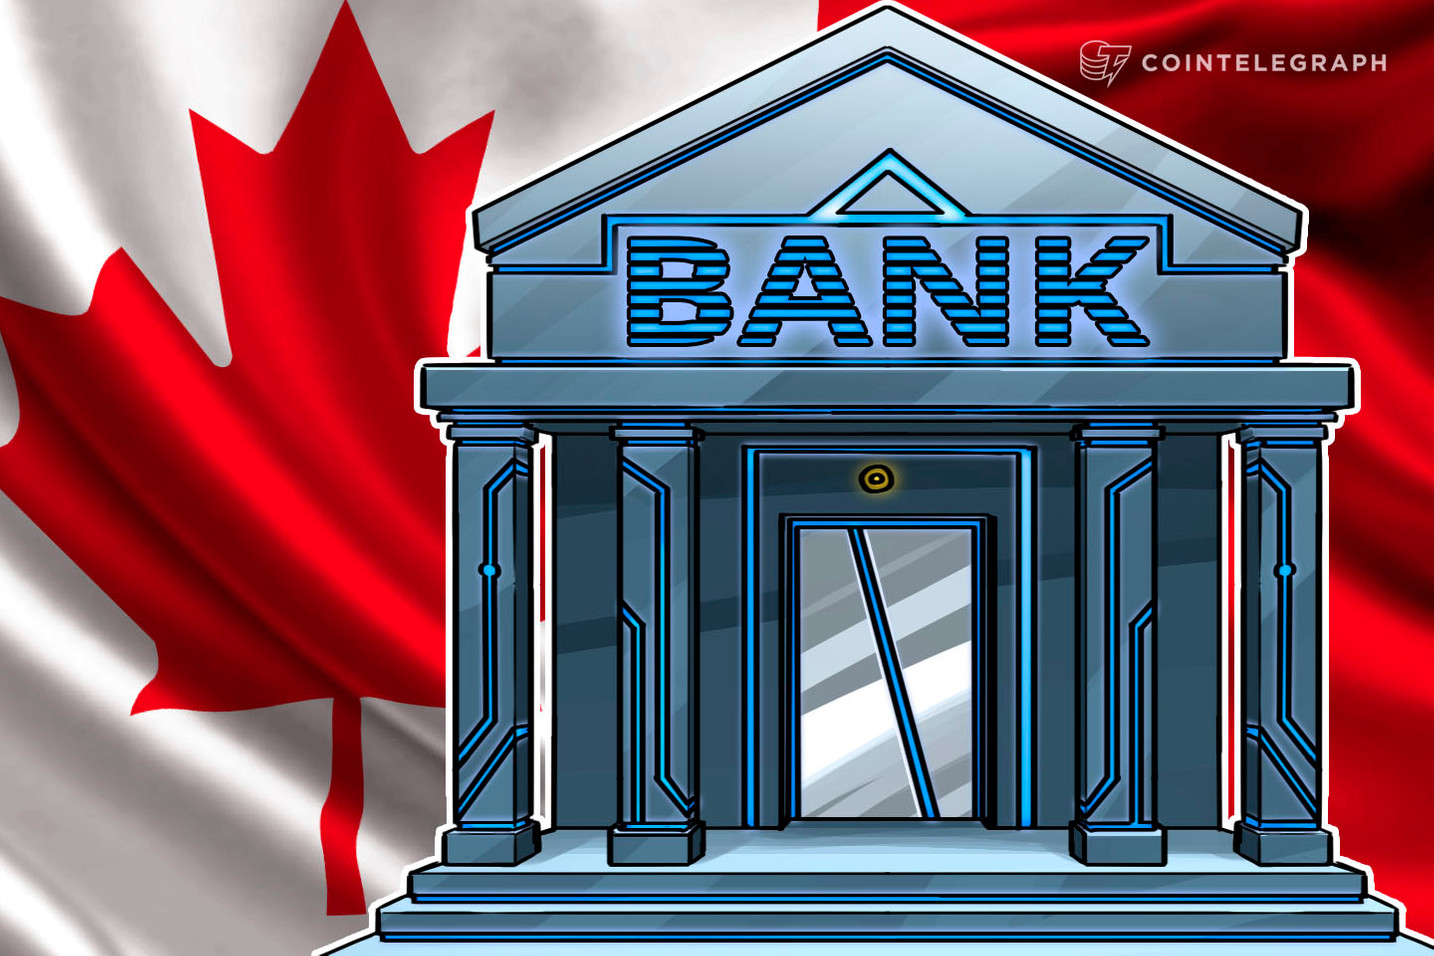 Bank of Canada: Blockchain Not More Effective Than Central Bank System 'at This Time'